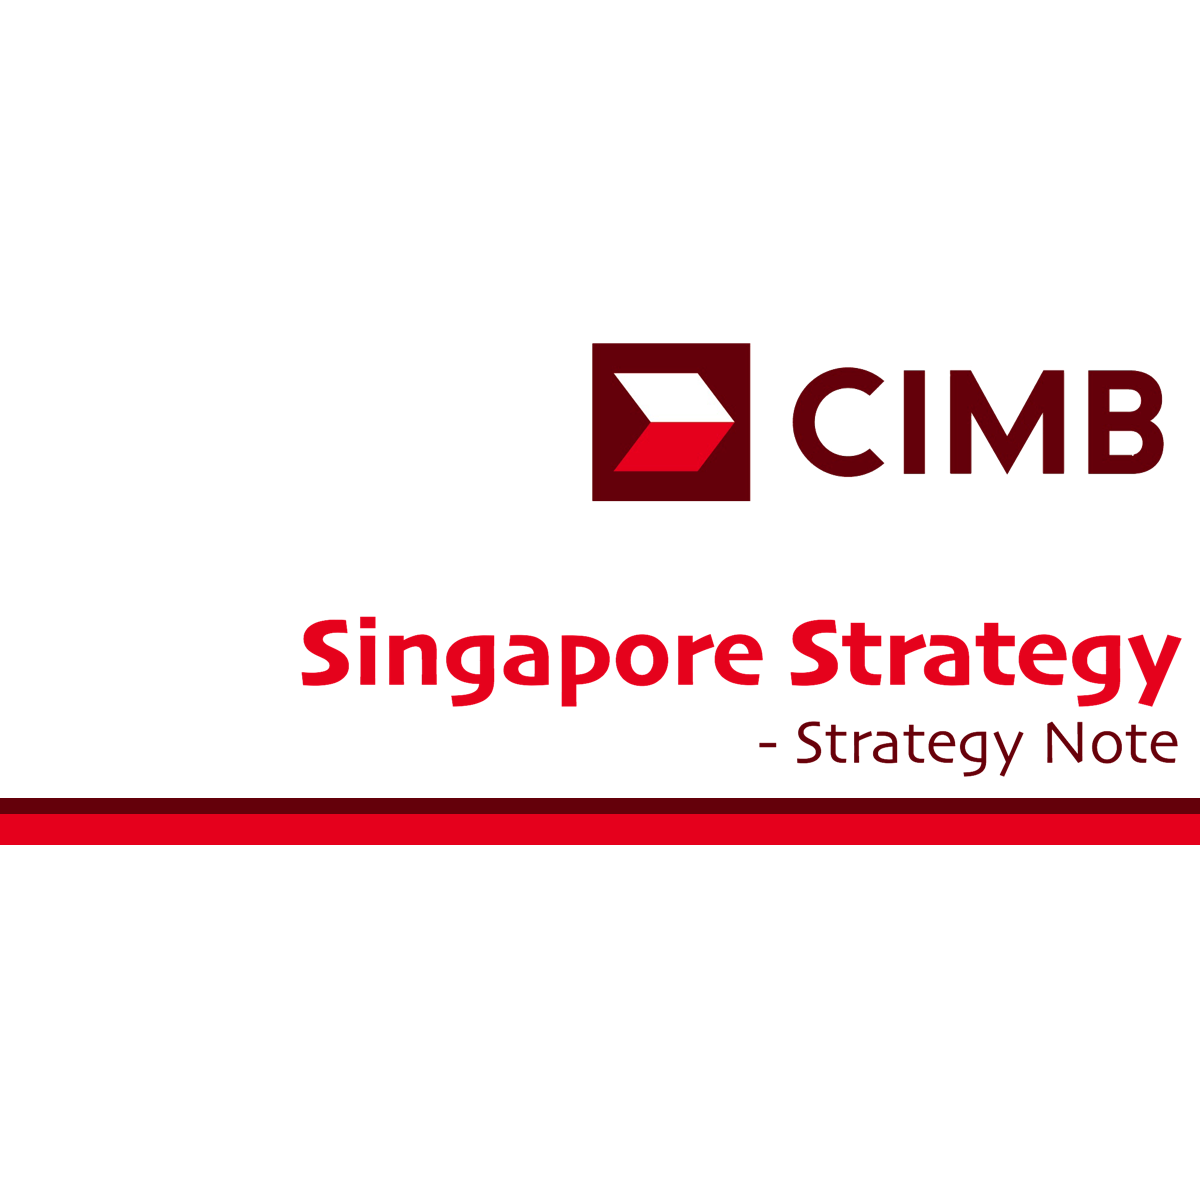 Stock Strategy Singapore - CGS-CIMB 2018-05-24: Analysts' Alpha Picks For 2H18 (Small Cap)